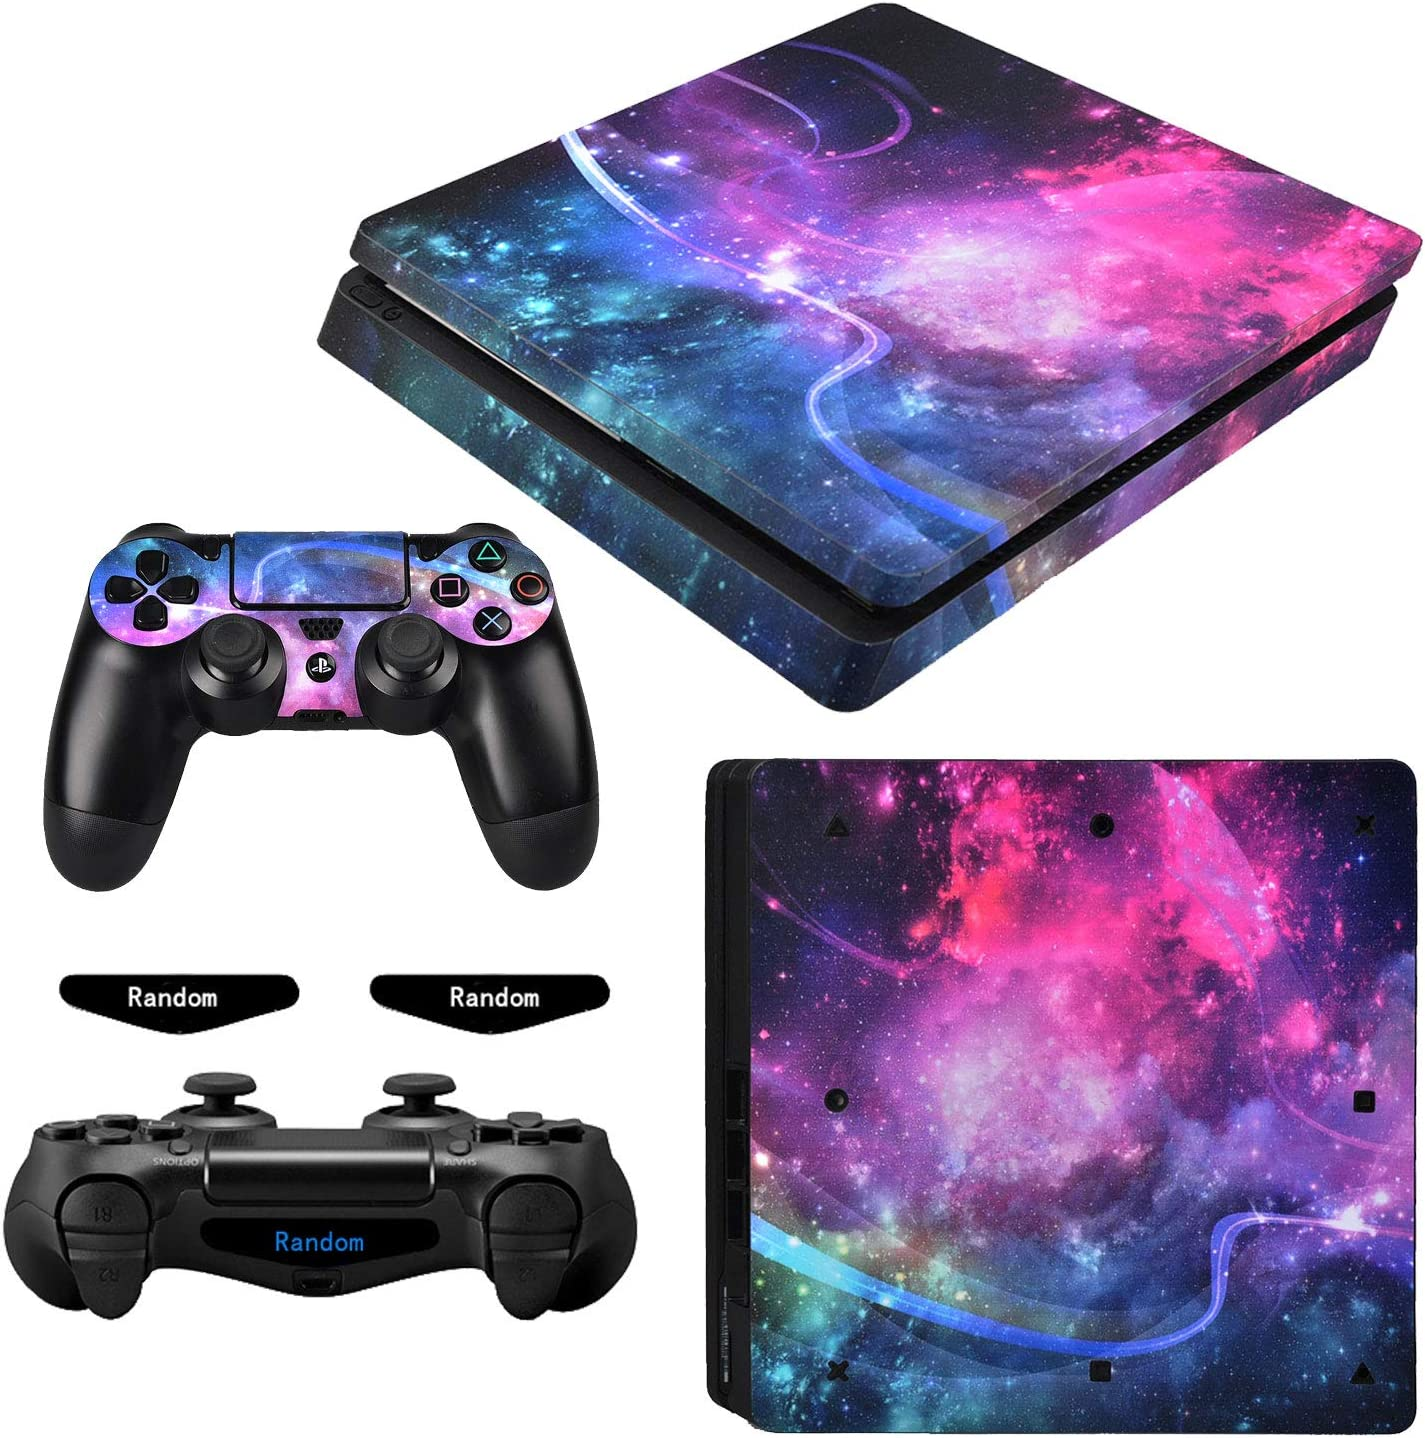 eXtremeRate Full Set Faceplate Skin Decals Stickers and 2 Led Lightbar for Playstation4 Slim/for PS4 Slim Console & 2 Controller Decal Covers - Shining Galaxy